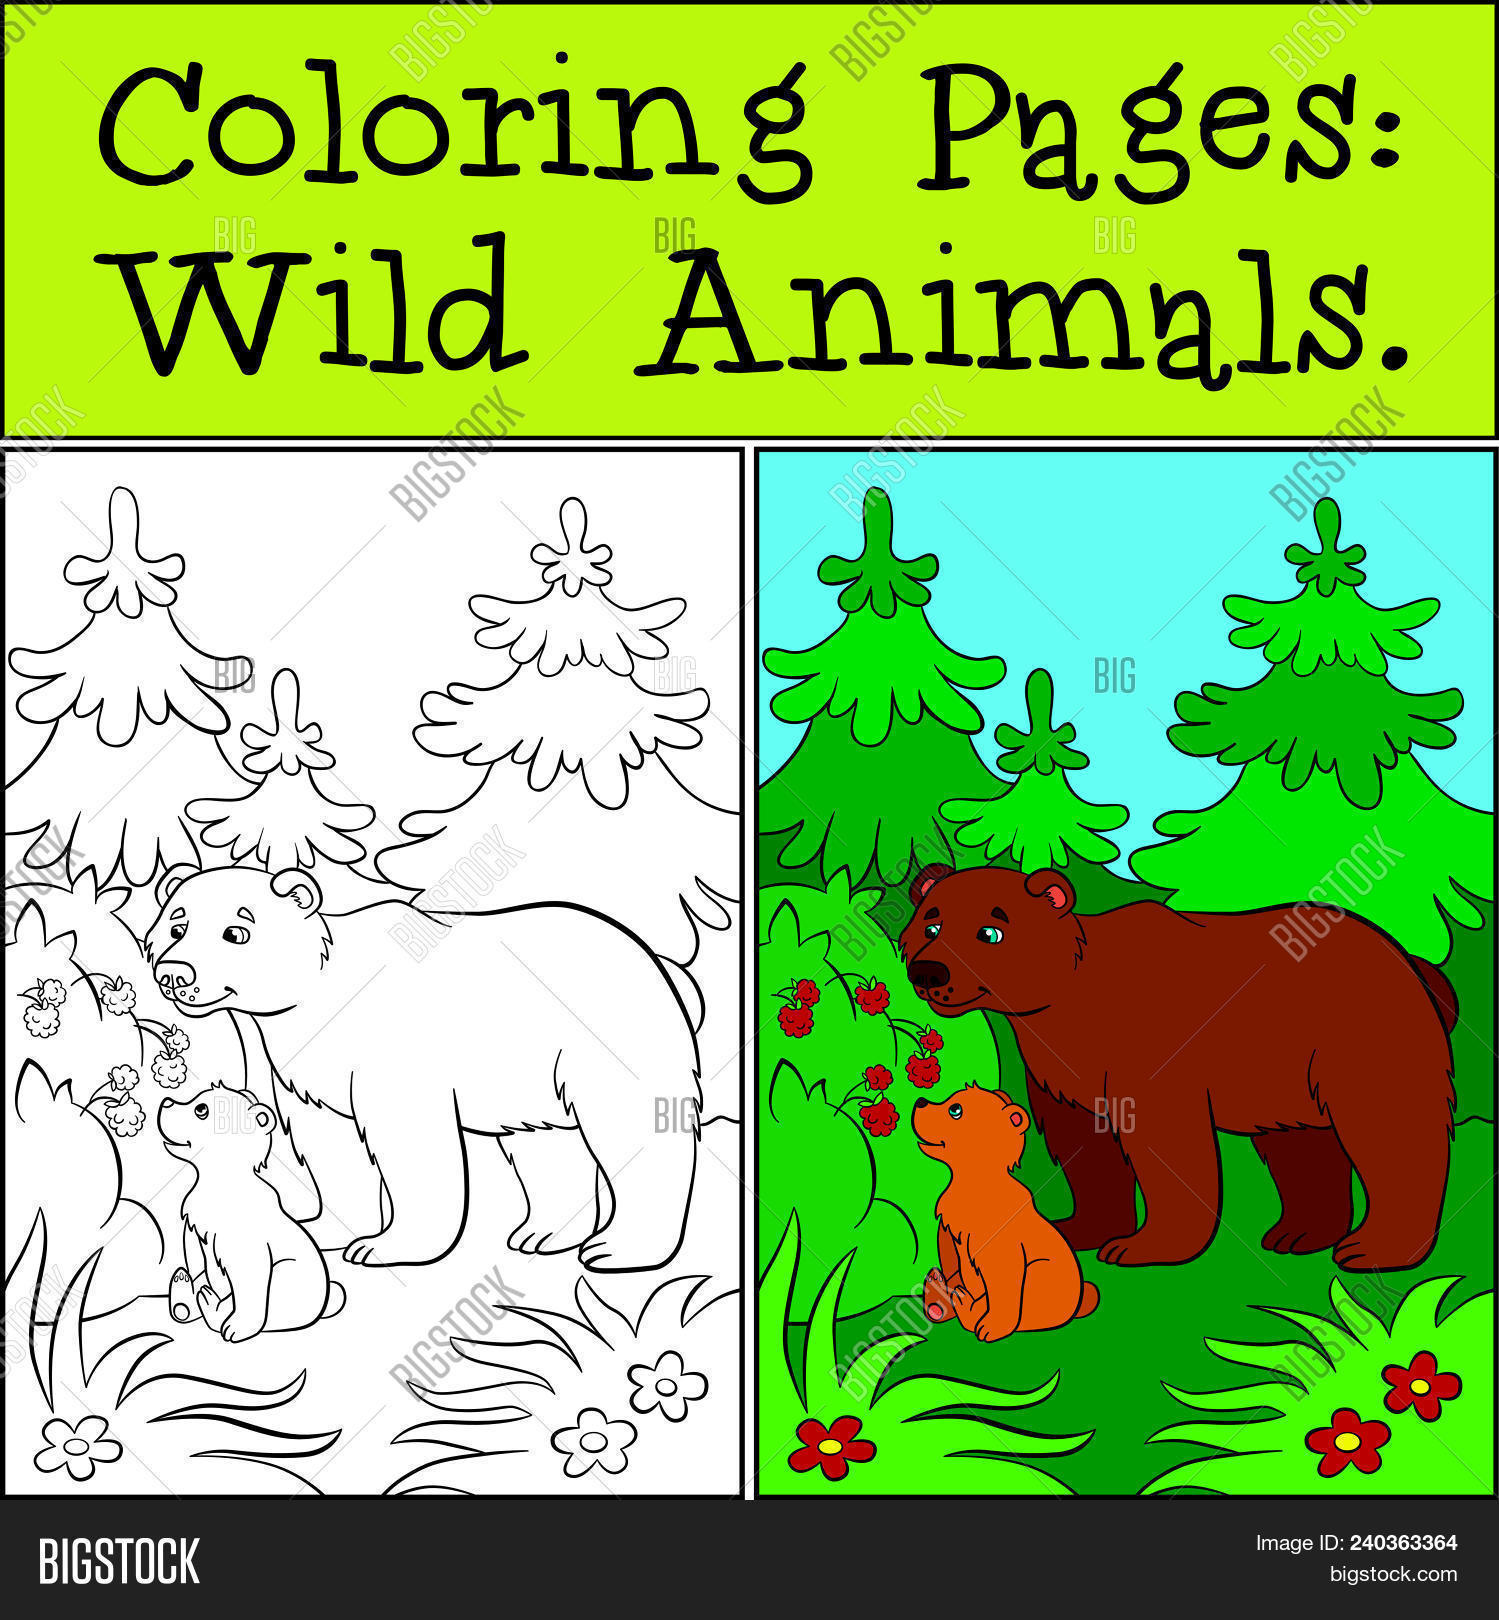 Coloring pages wild vector photo free trial bigstock